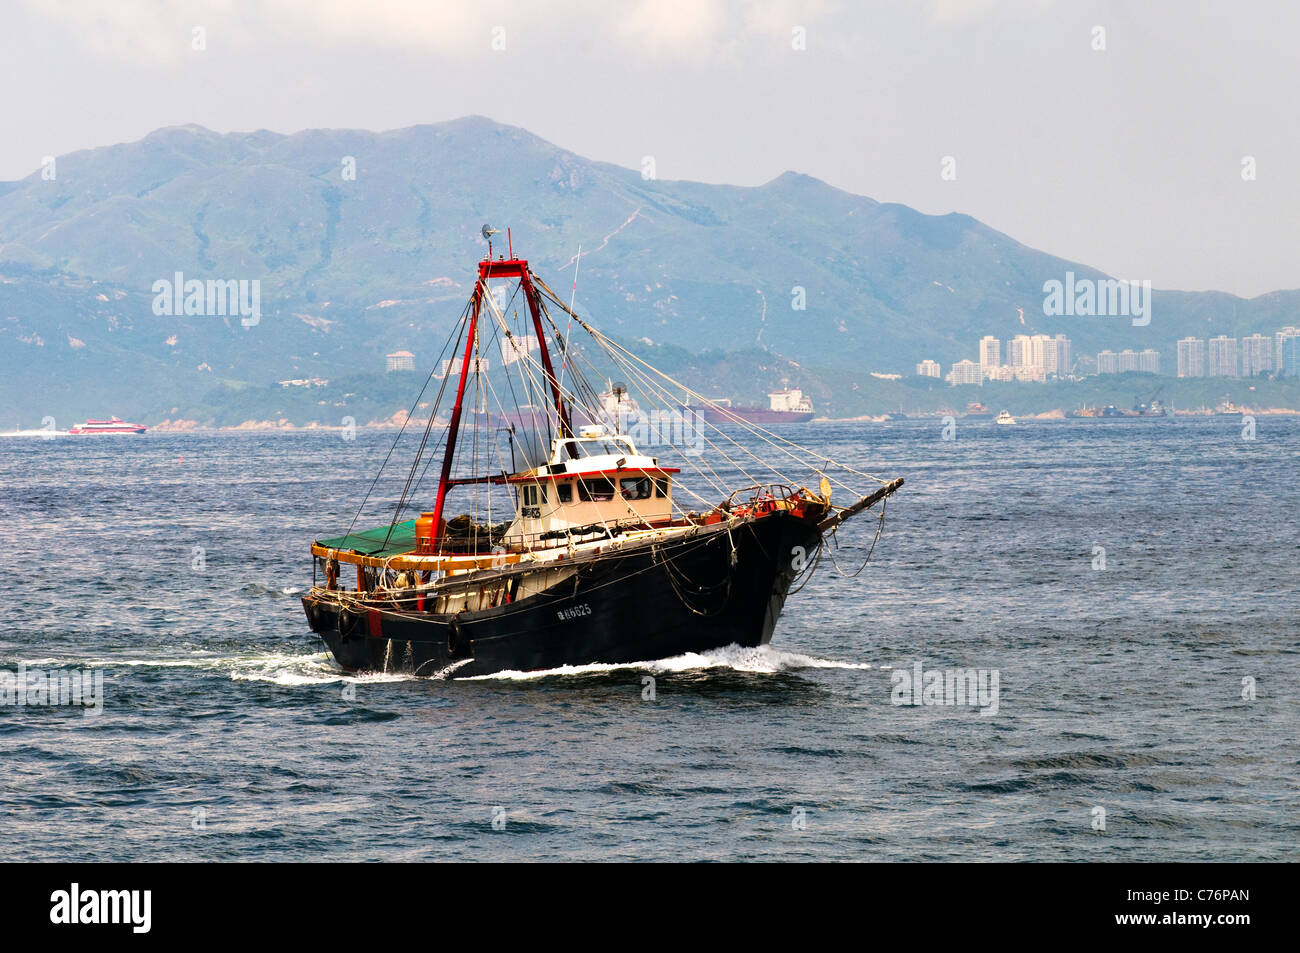 A traditional Chinese style fishing boat in the south China Sea. two big fishing nets are dropped from both sides - Stock Image